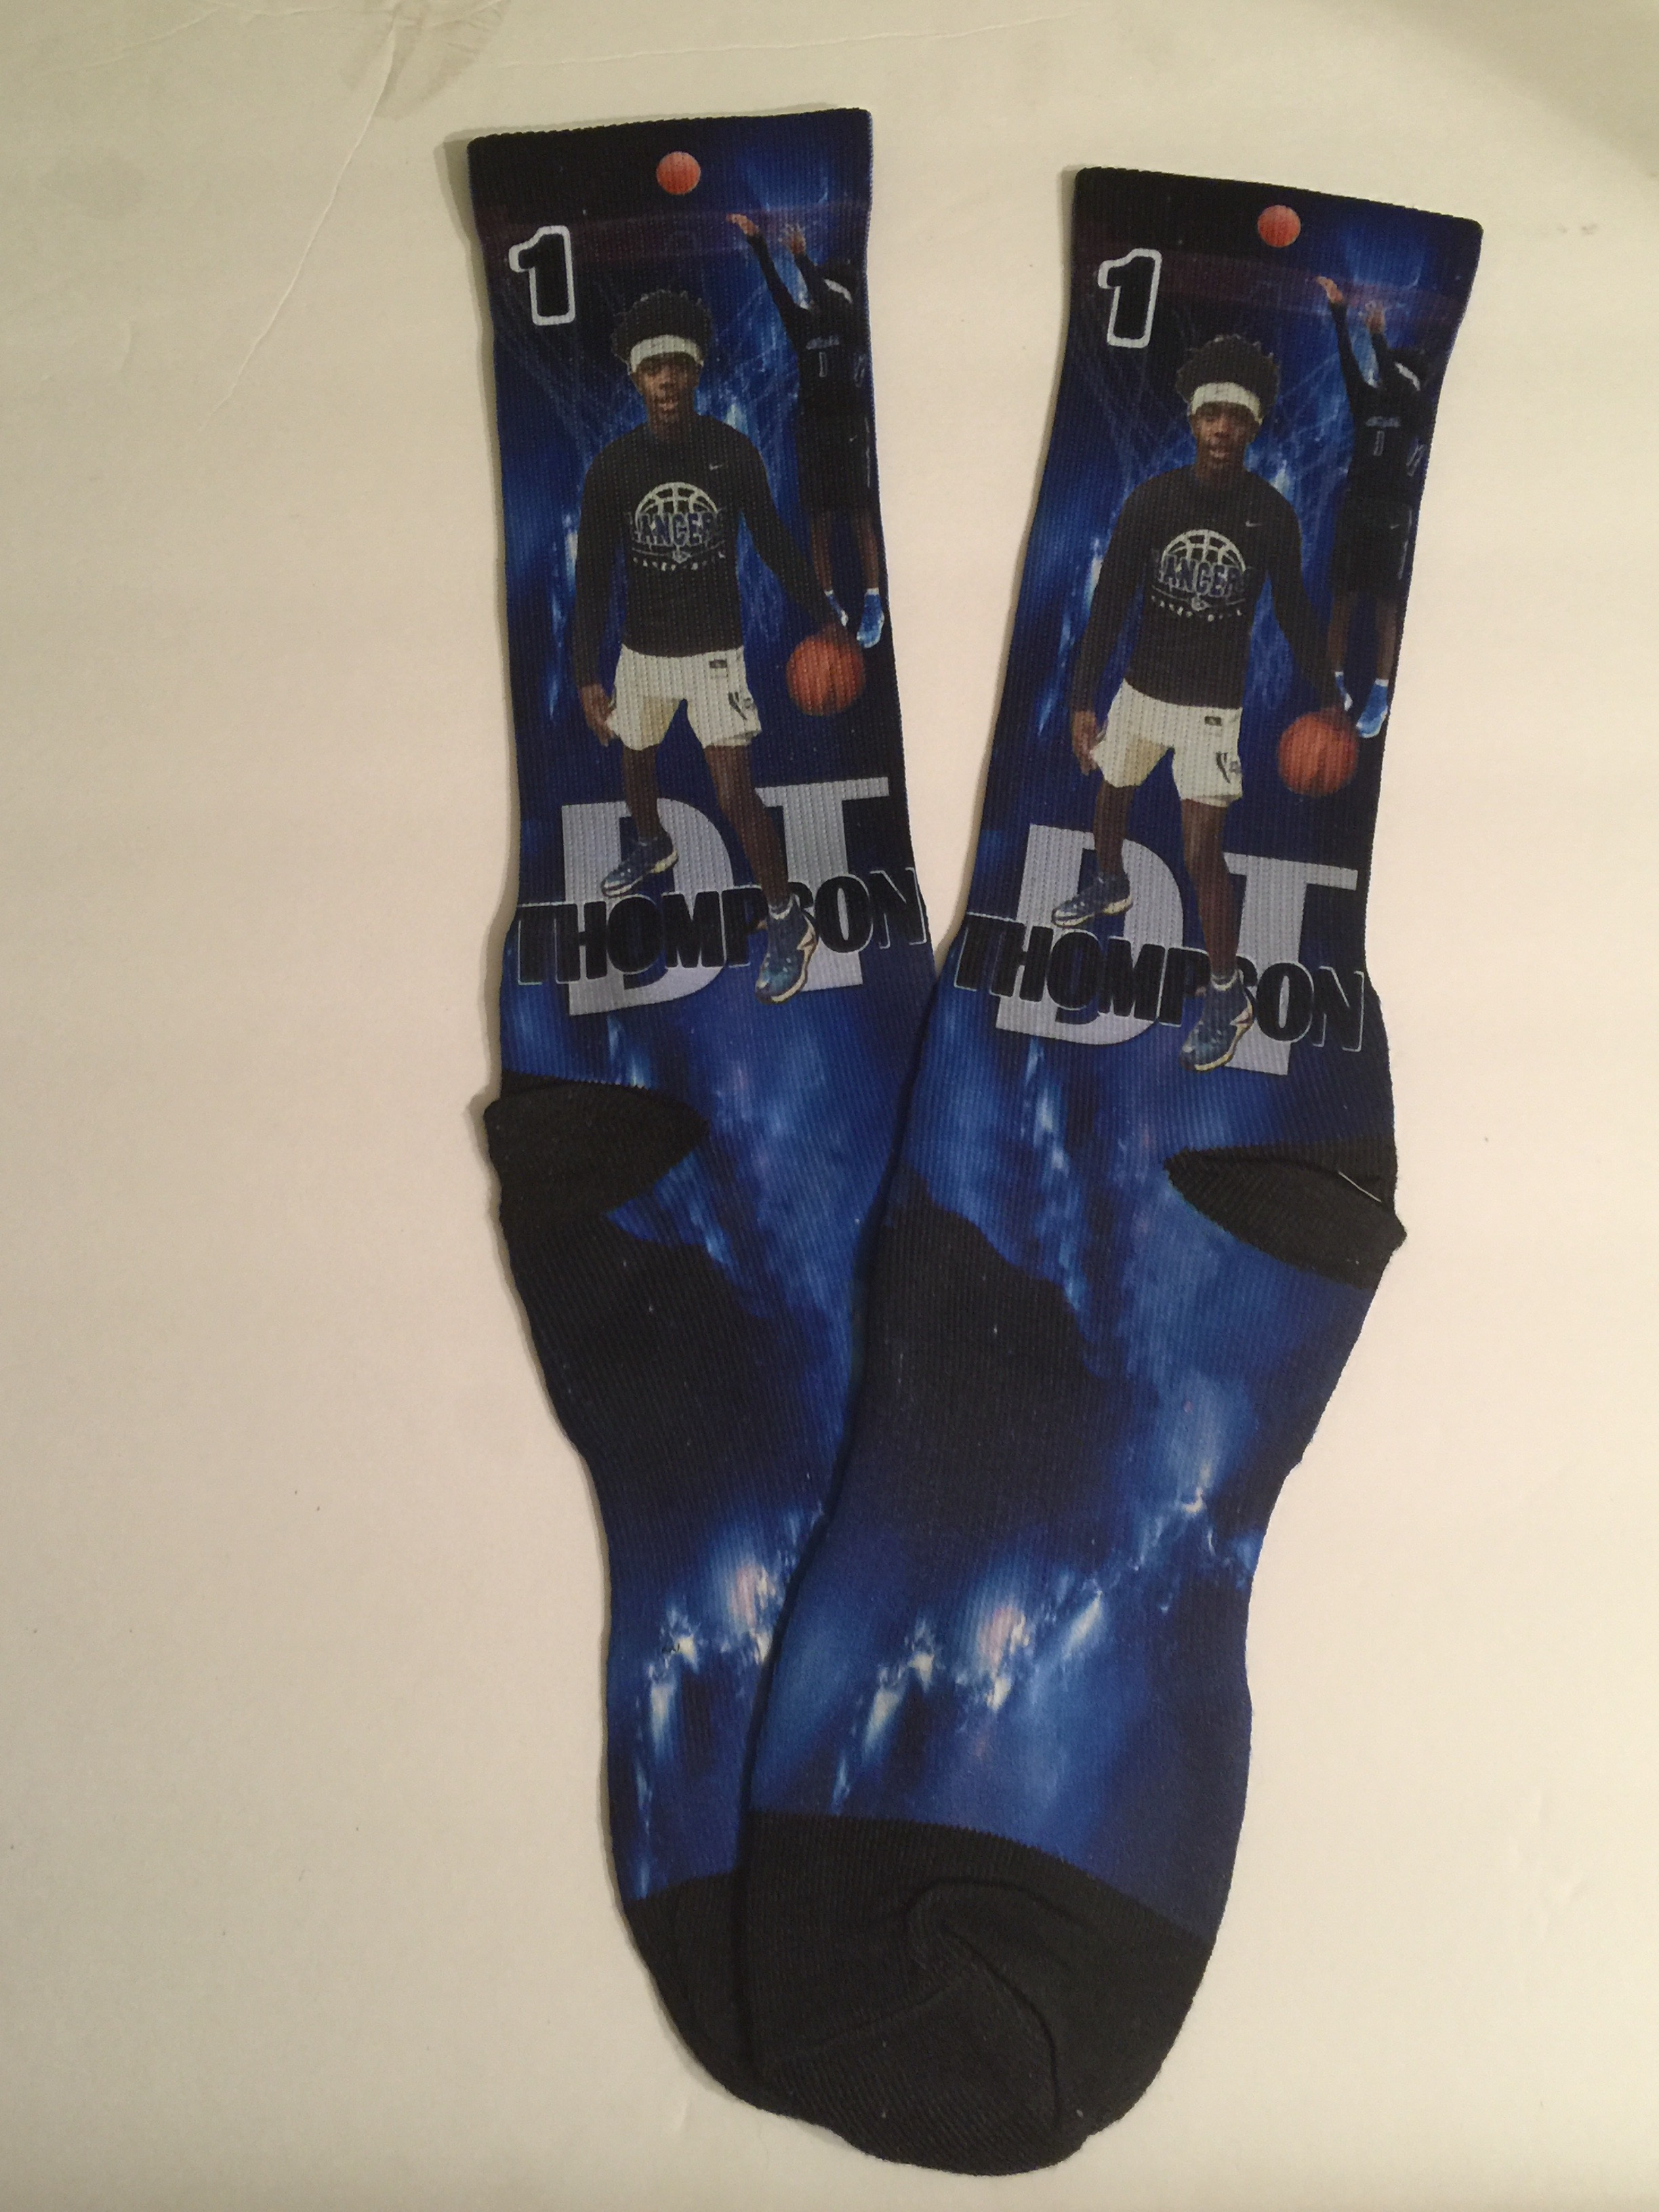 No. 1 Basketball Socks